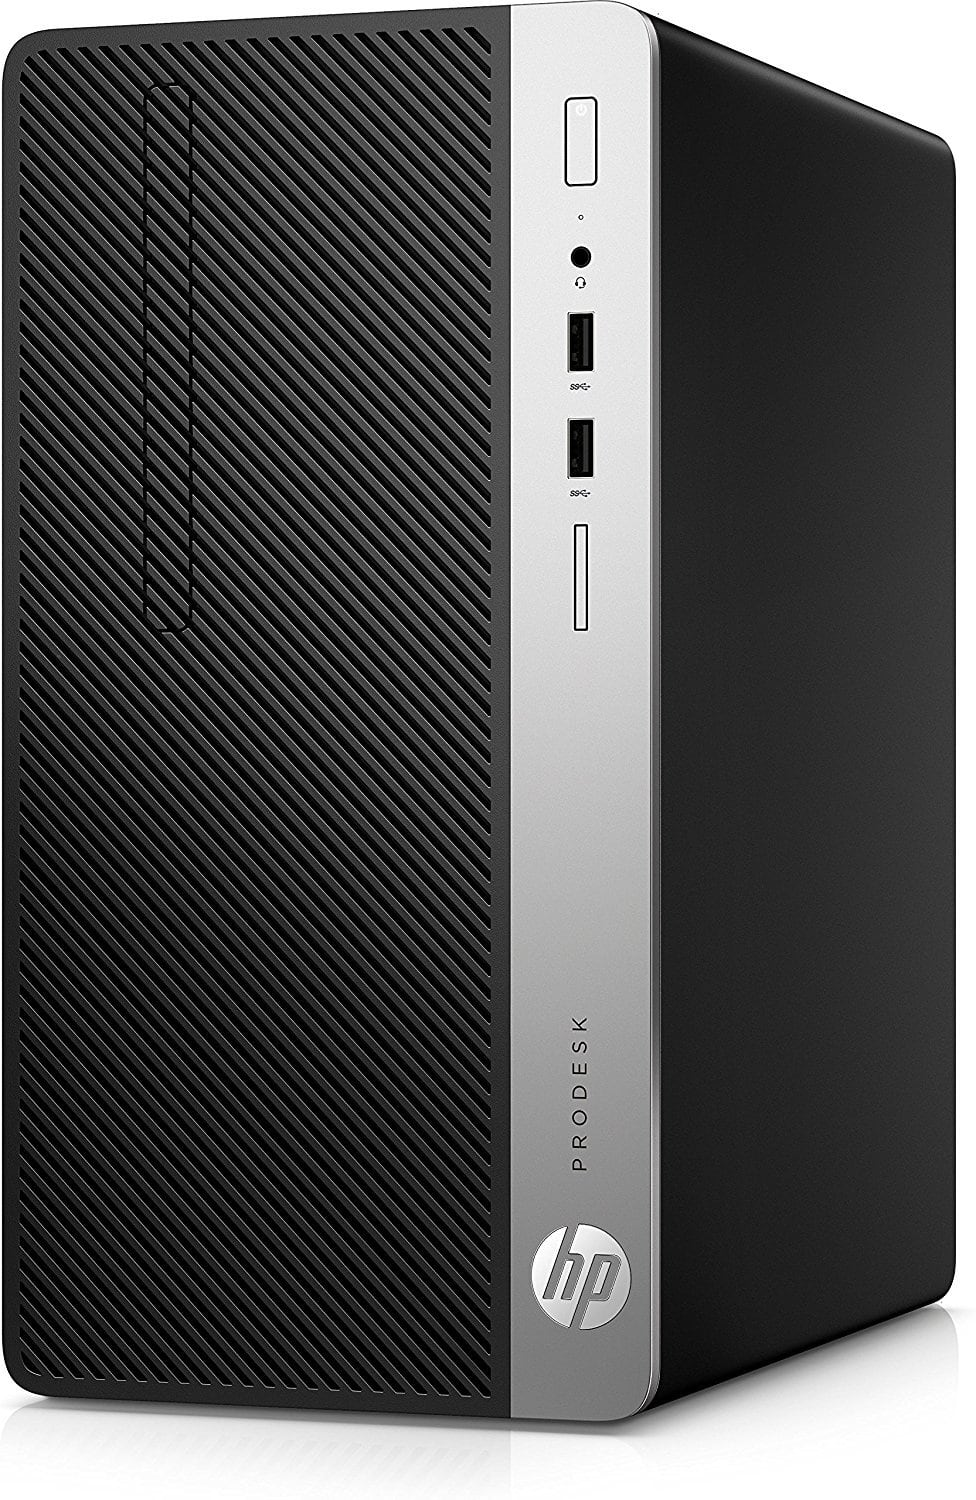 HP ProDesk 400 Business Desktop Core i5-7400 w/ 3yr warranty $449 free shipping @ PC Mag Shop $449.99